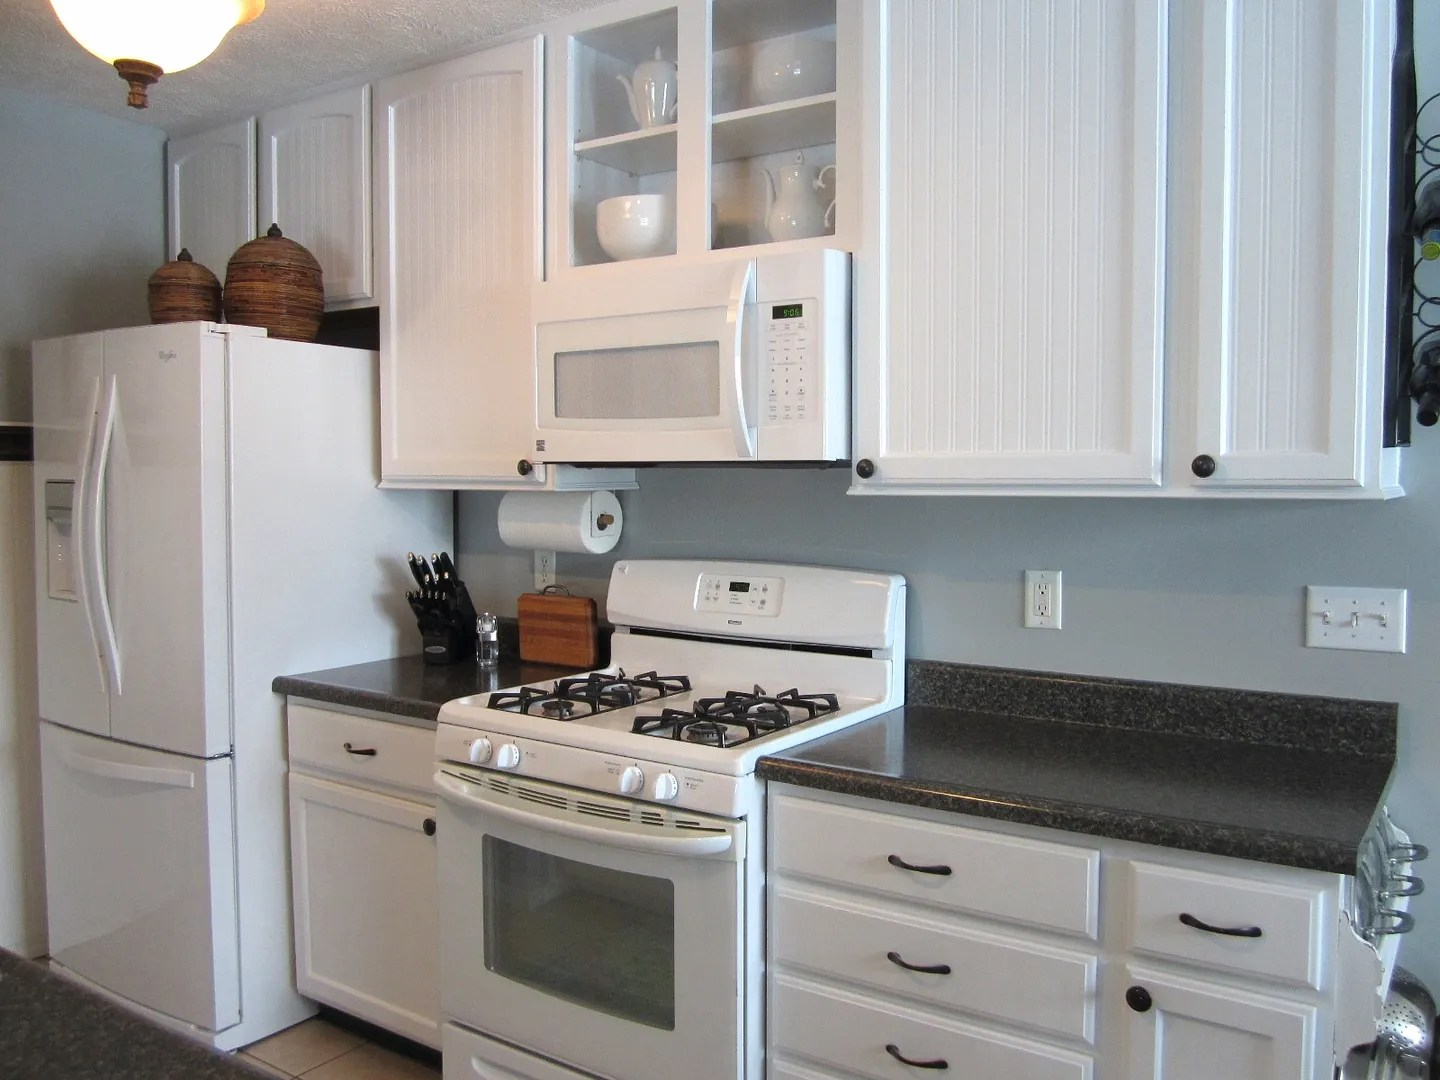 Cabinet Paint That Matches White Kitchen Appliances